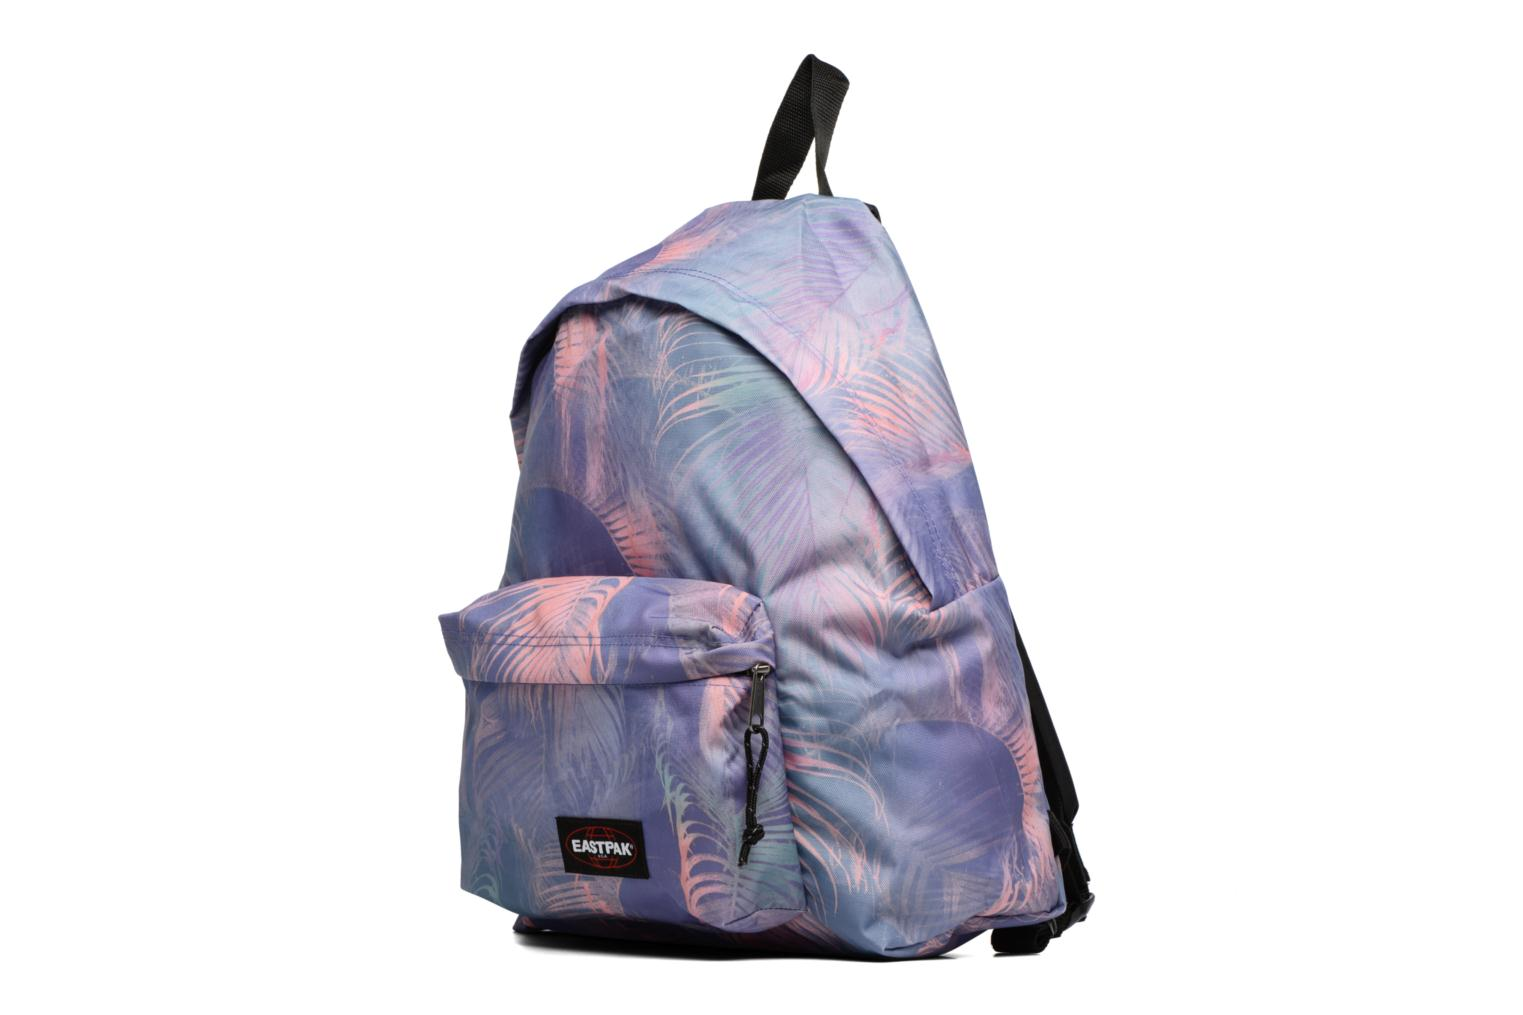 Rugzakken Eastpak PADDED PACK'R Sac à dos toile Roze model